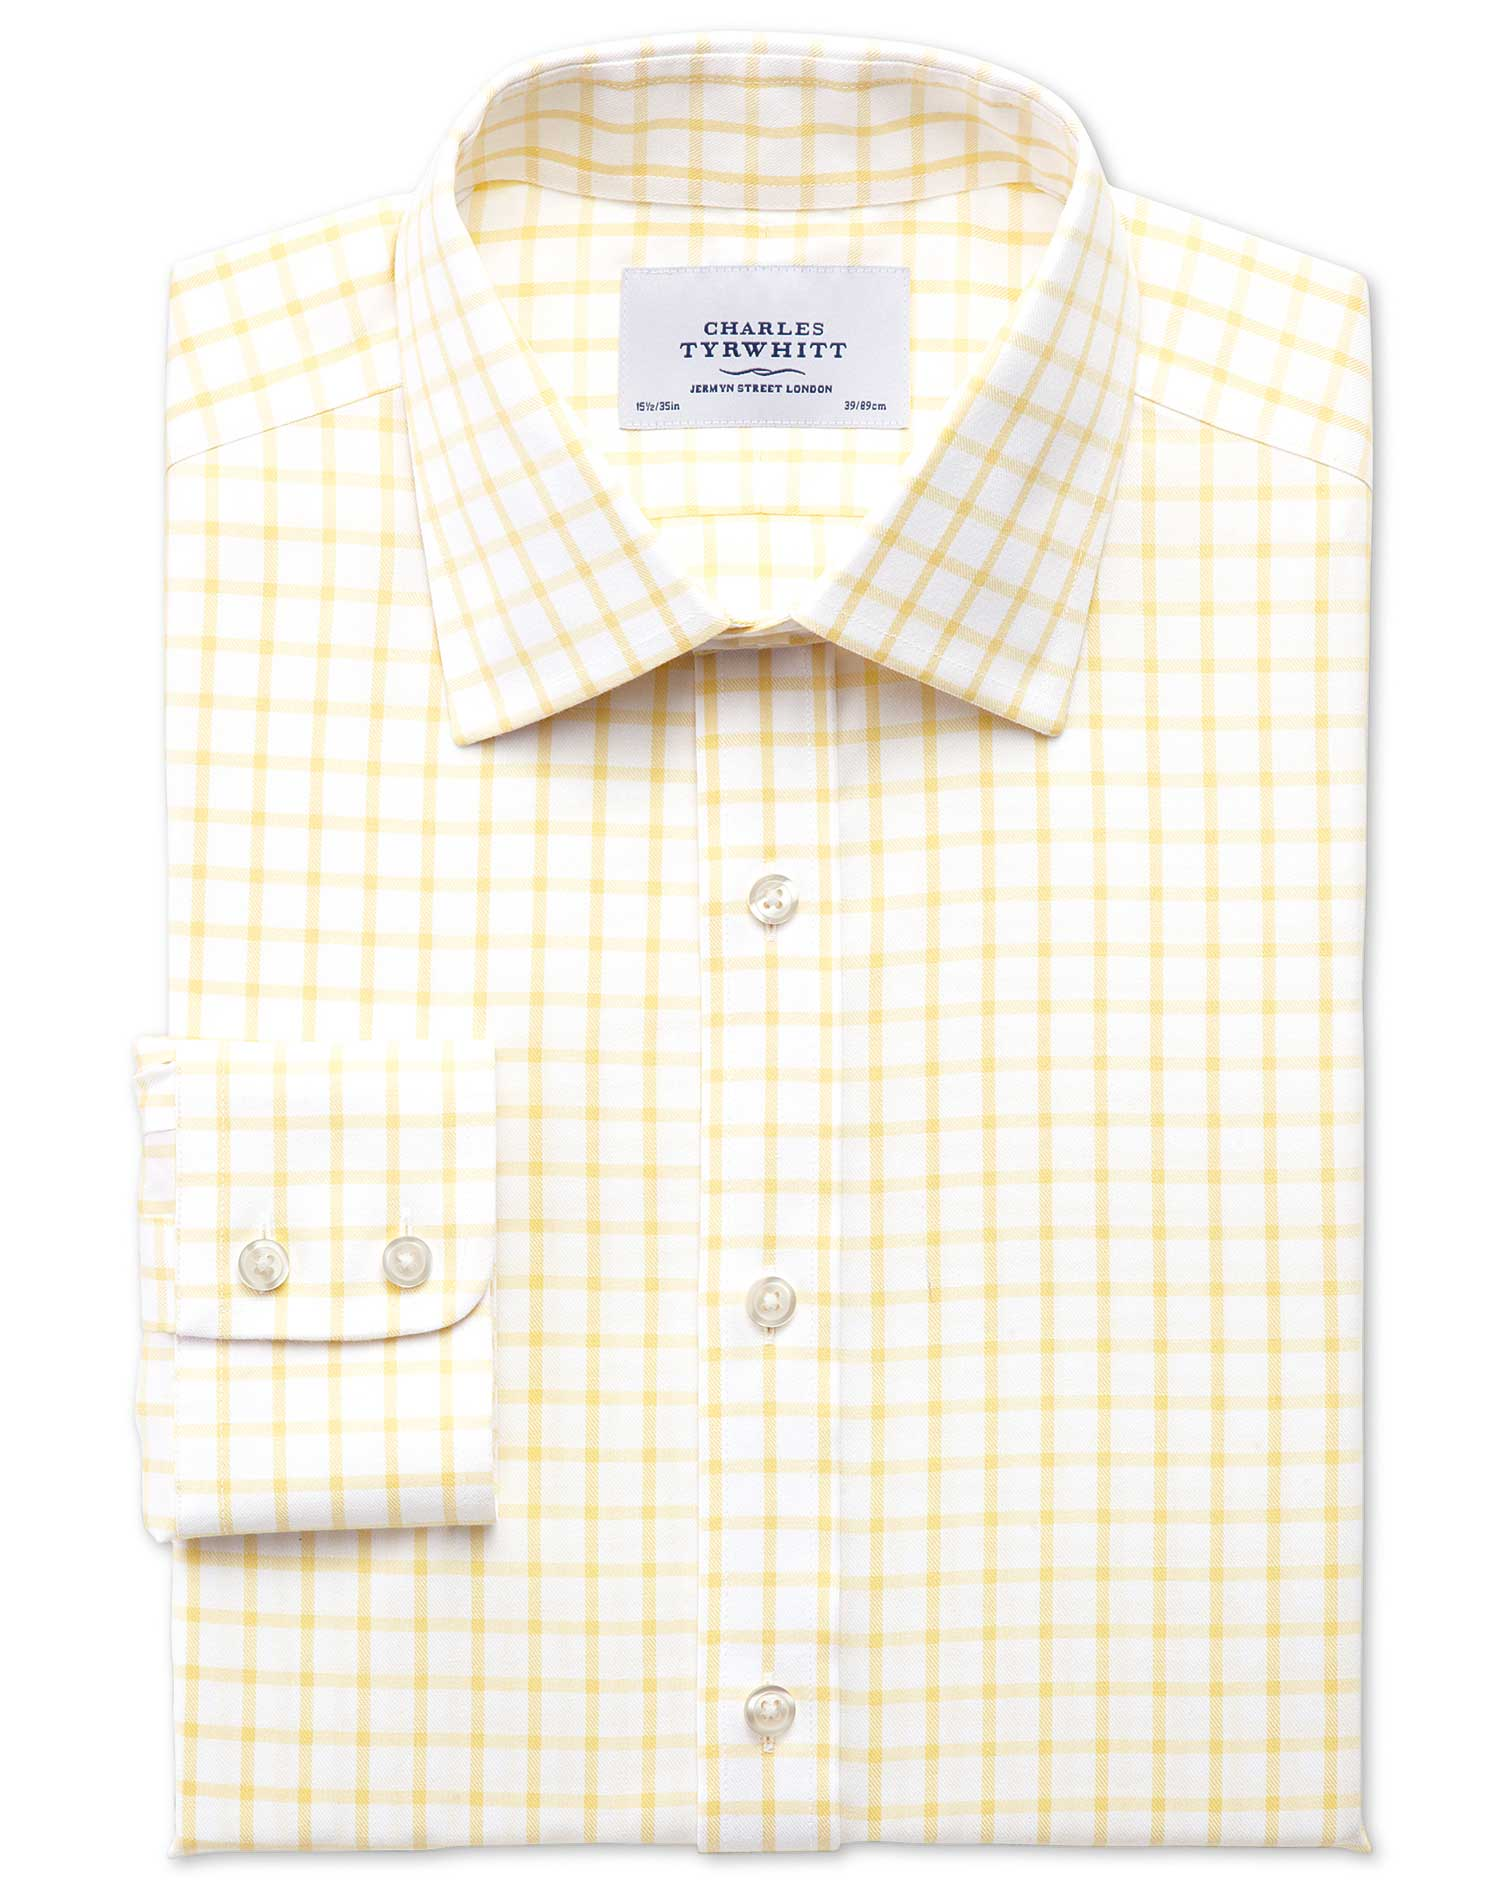 Extra Slim Fit Non-Iron Twill Grid Check Light Yellow Cotton Formal Shirt Single Cuff Size 16/35 by